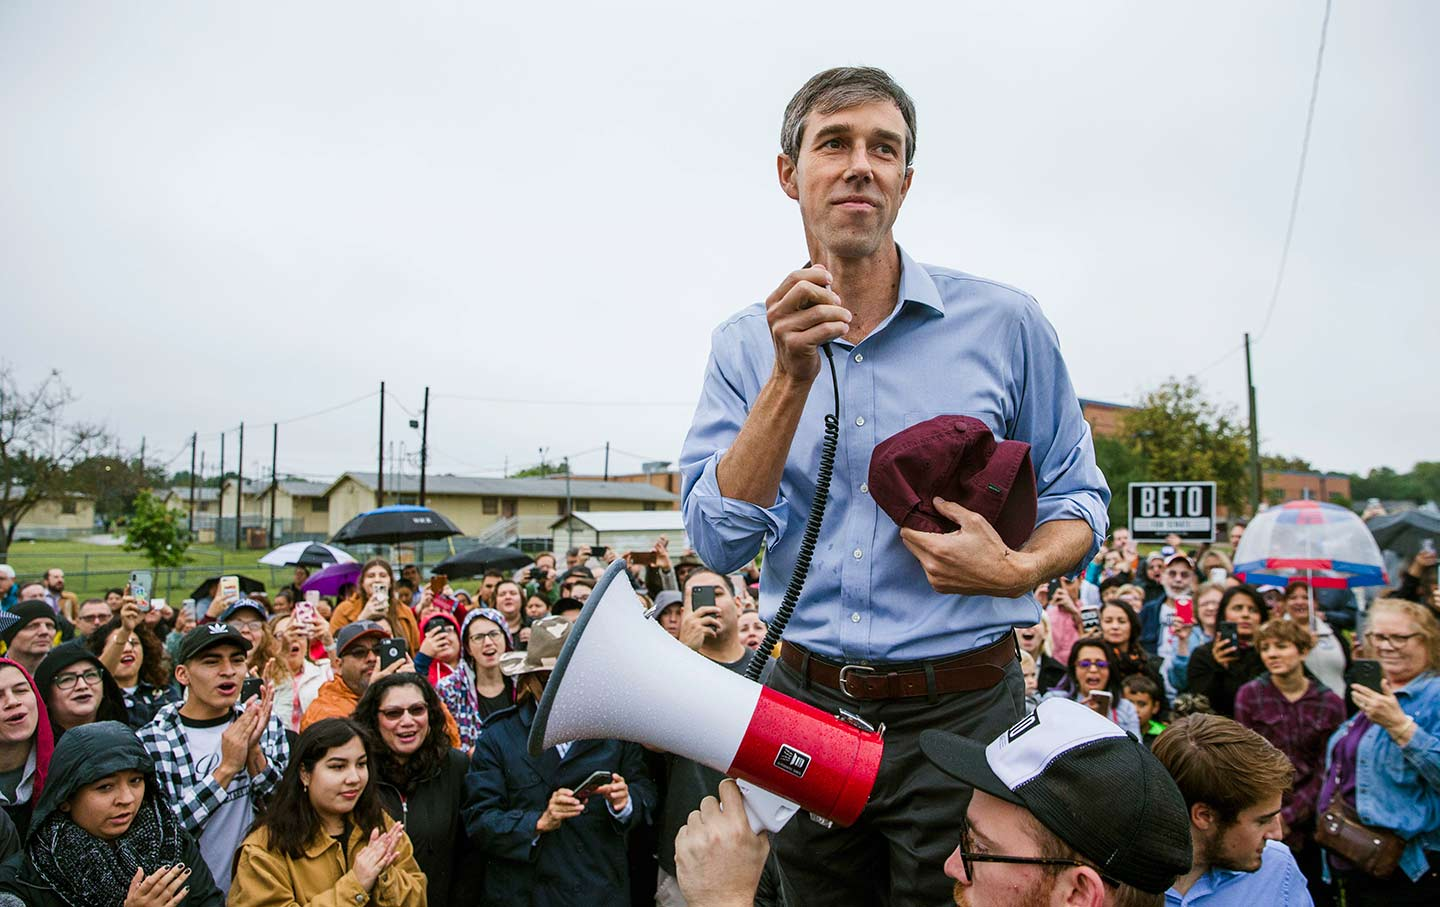 Beto O'Rourke with megaphone